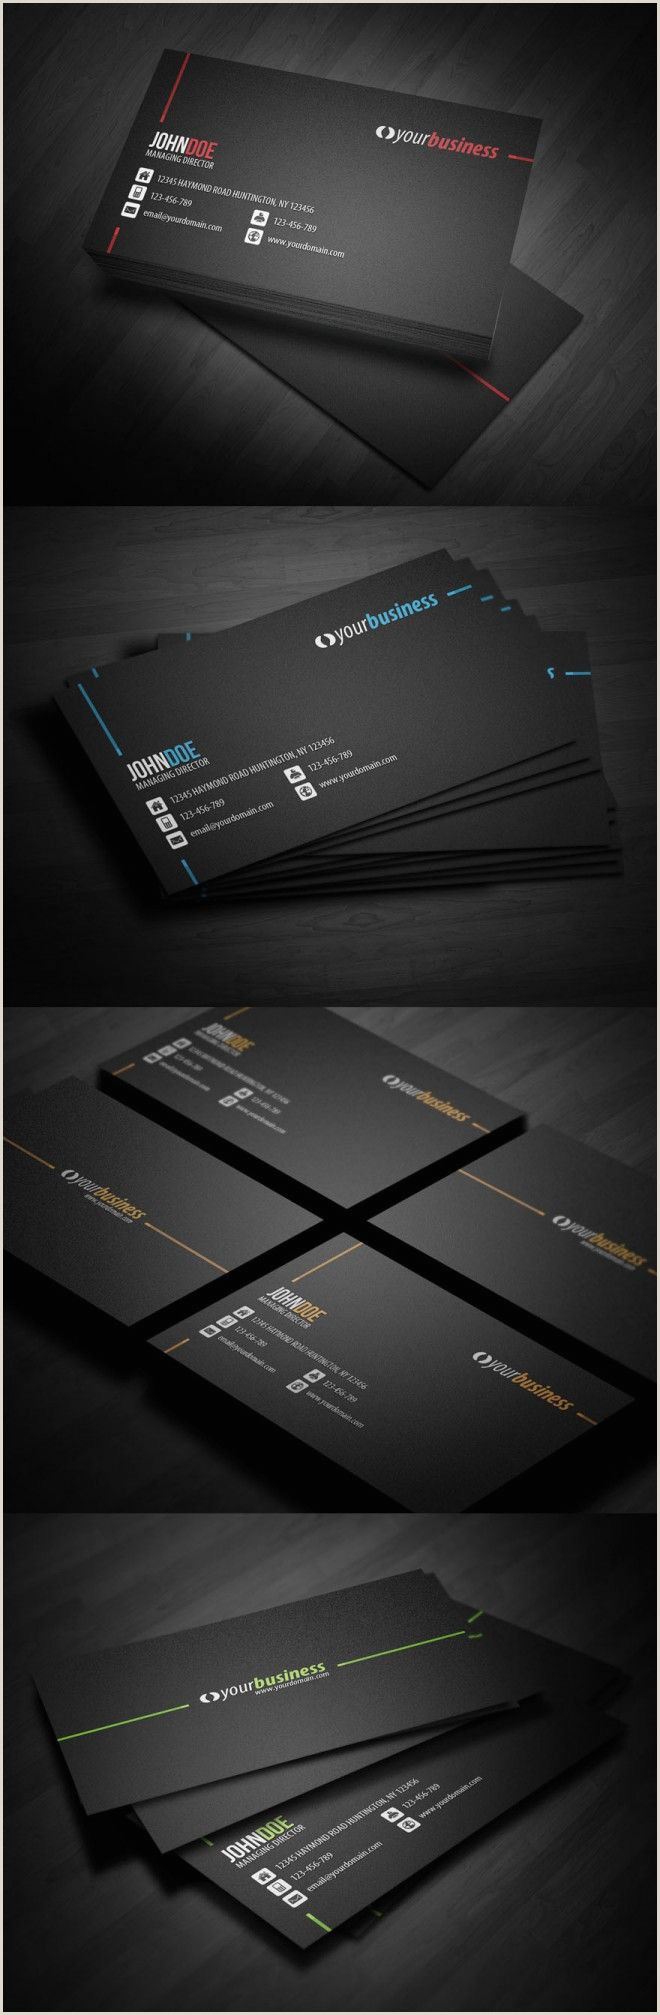 Capital Ones Best Business Cards 50 Creative Corporate Business Card Design Examples Design